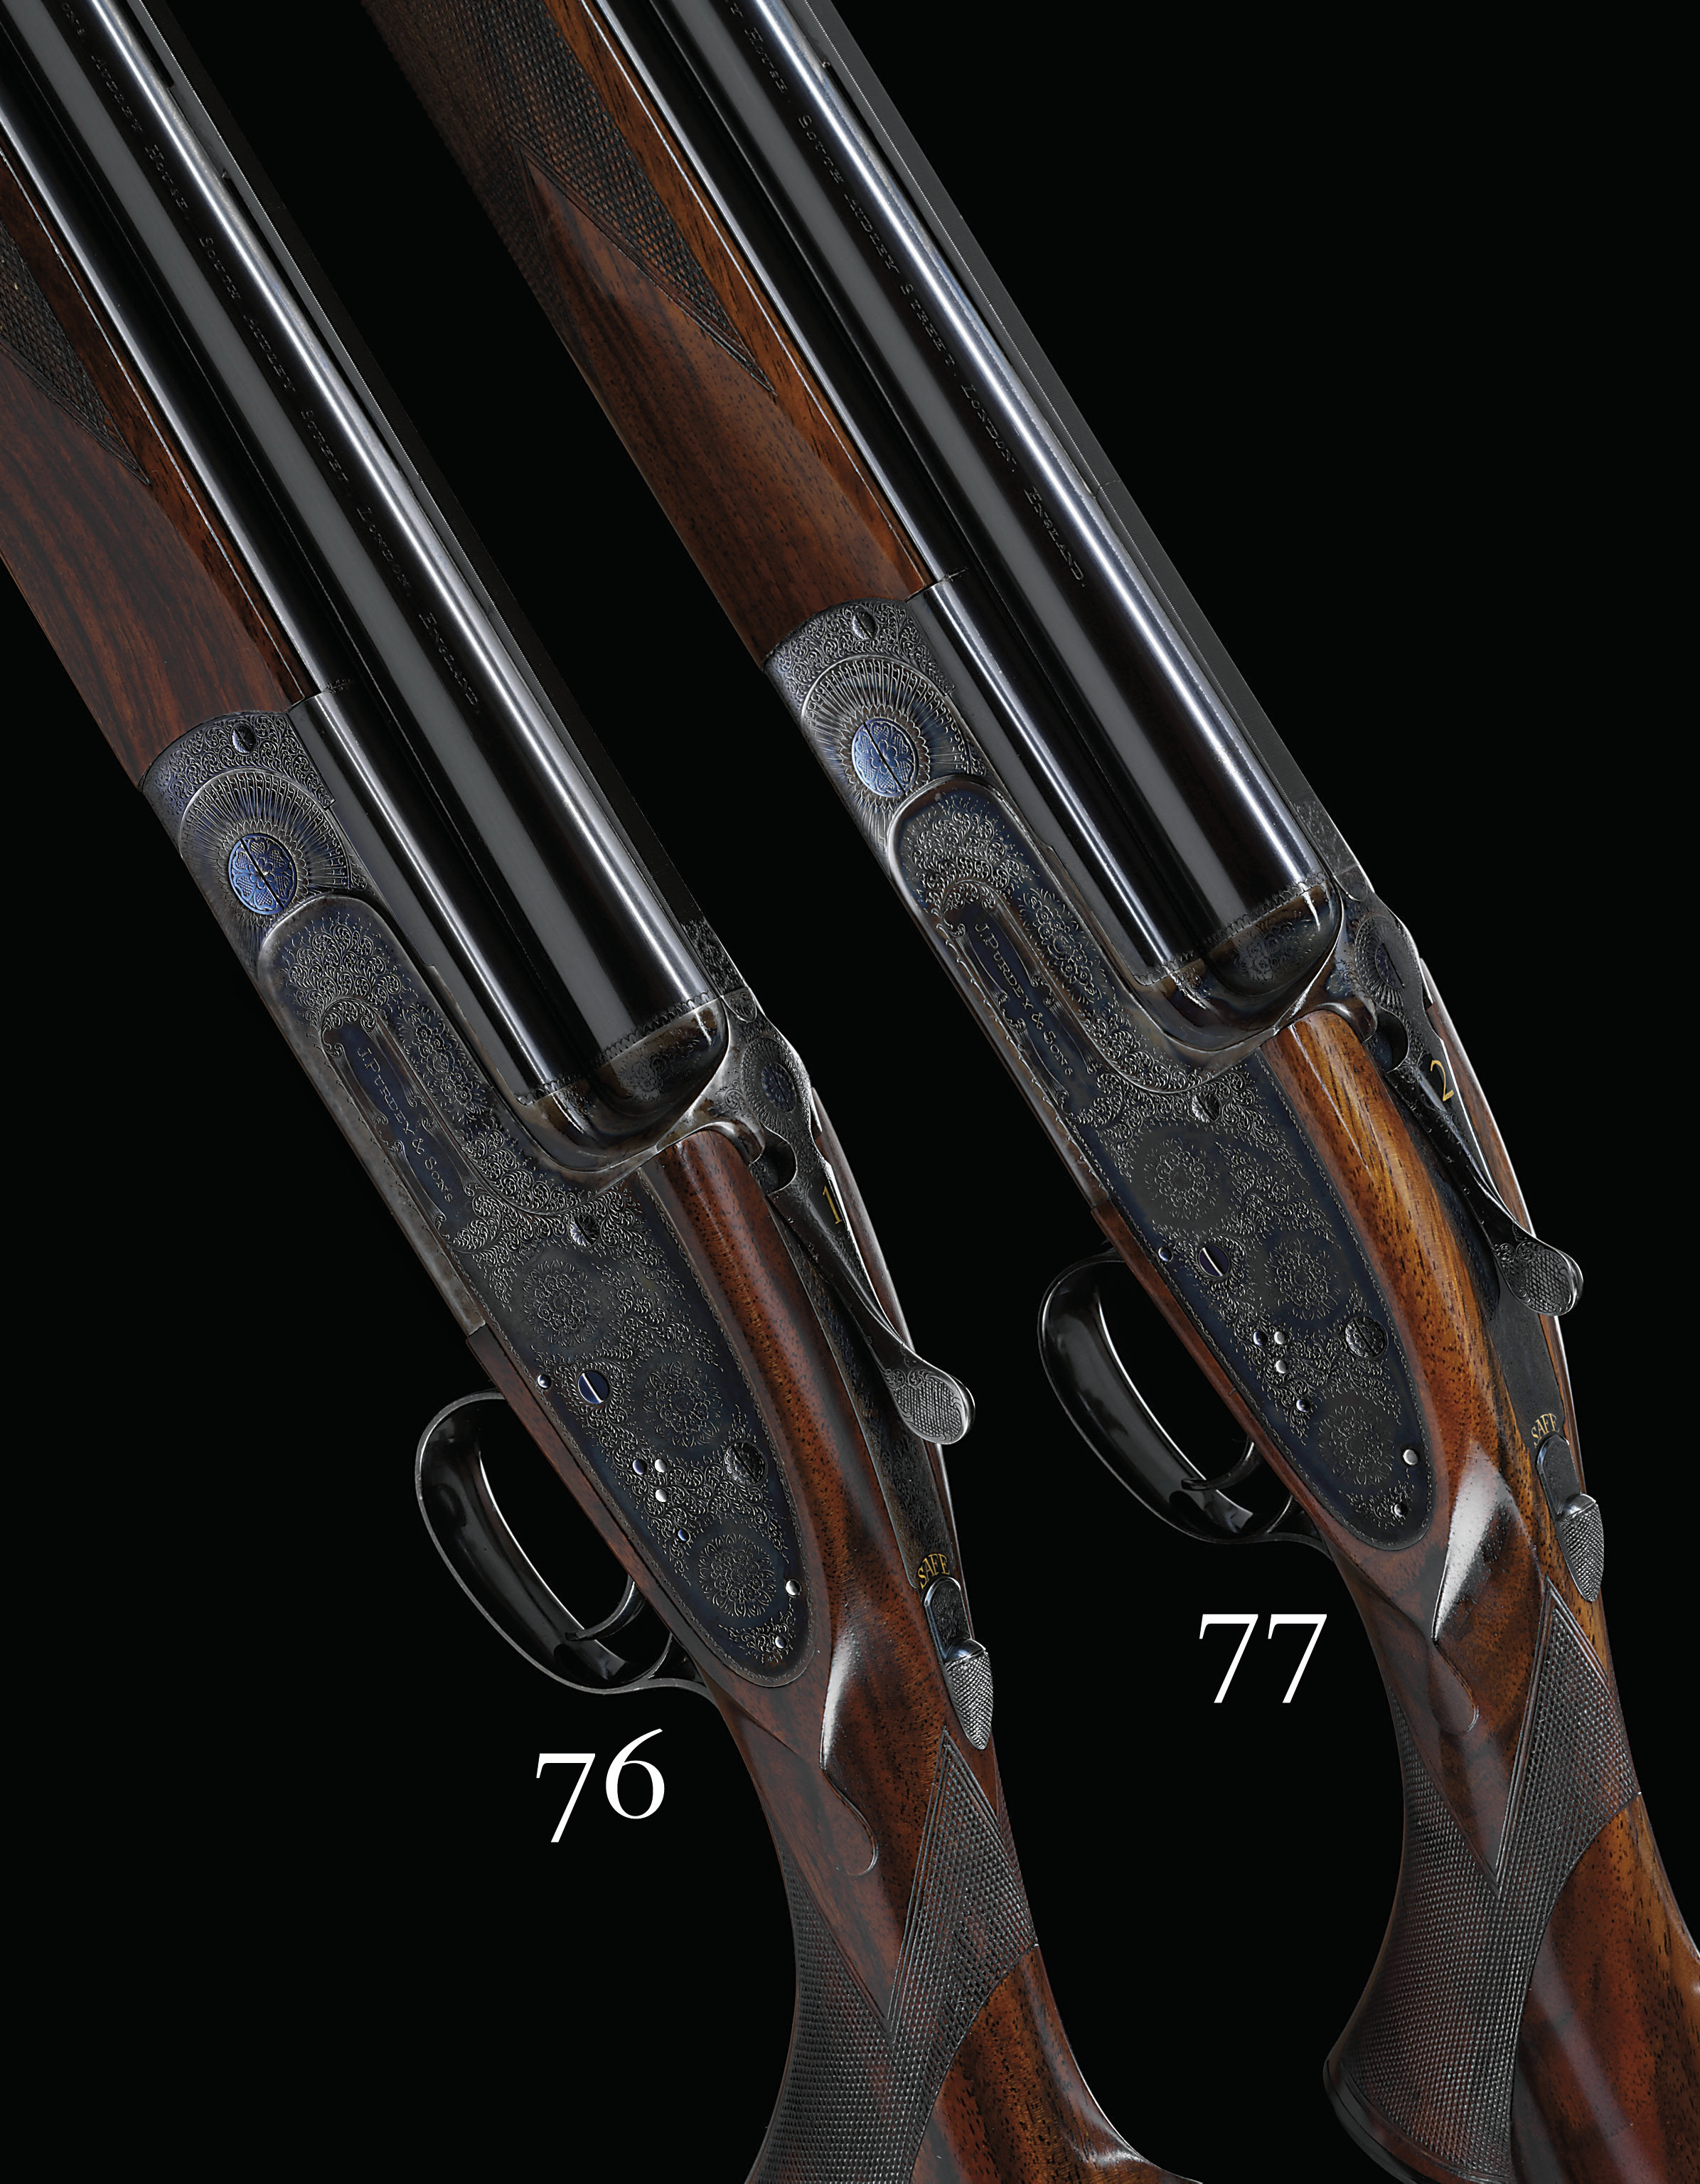 AN EXCEPTIONALLY FINE 12-BORE SINGLE-TRIGGER OVER-AND-UNDER SIDELOCK EJECTOR GUN BY J. PURDEY & SONS, NO. 28438